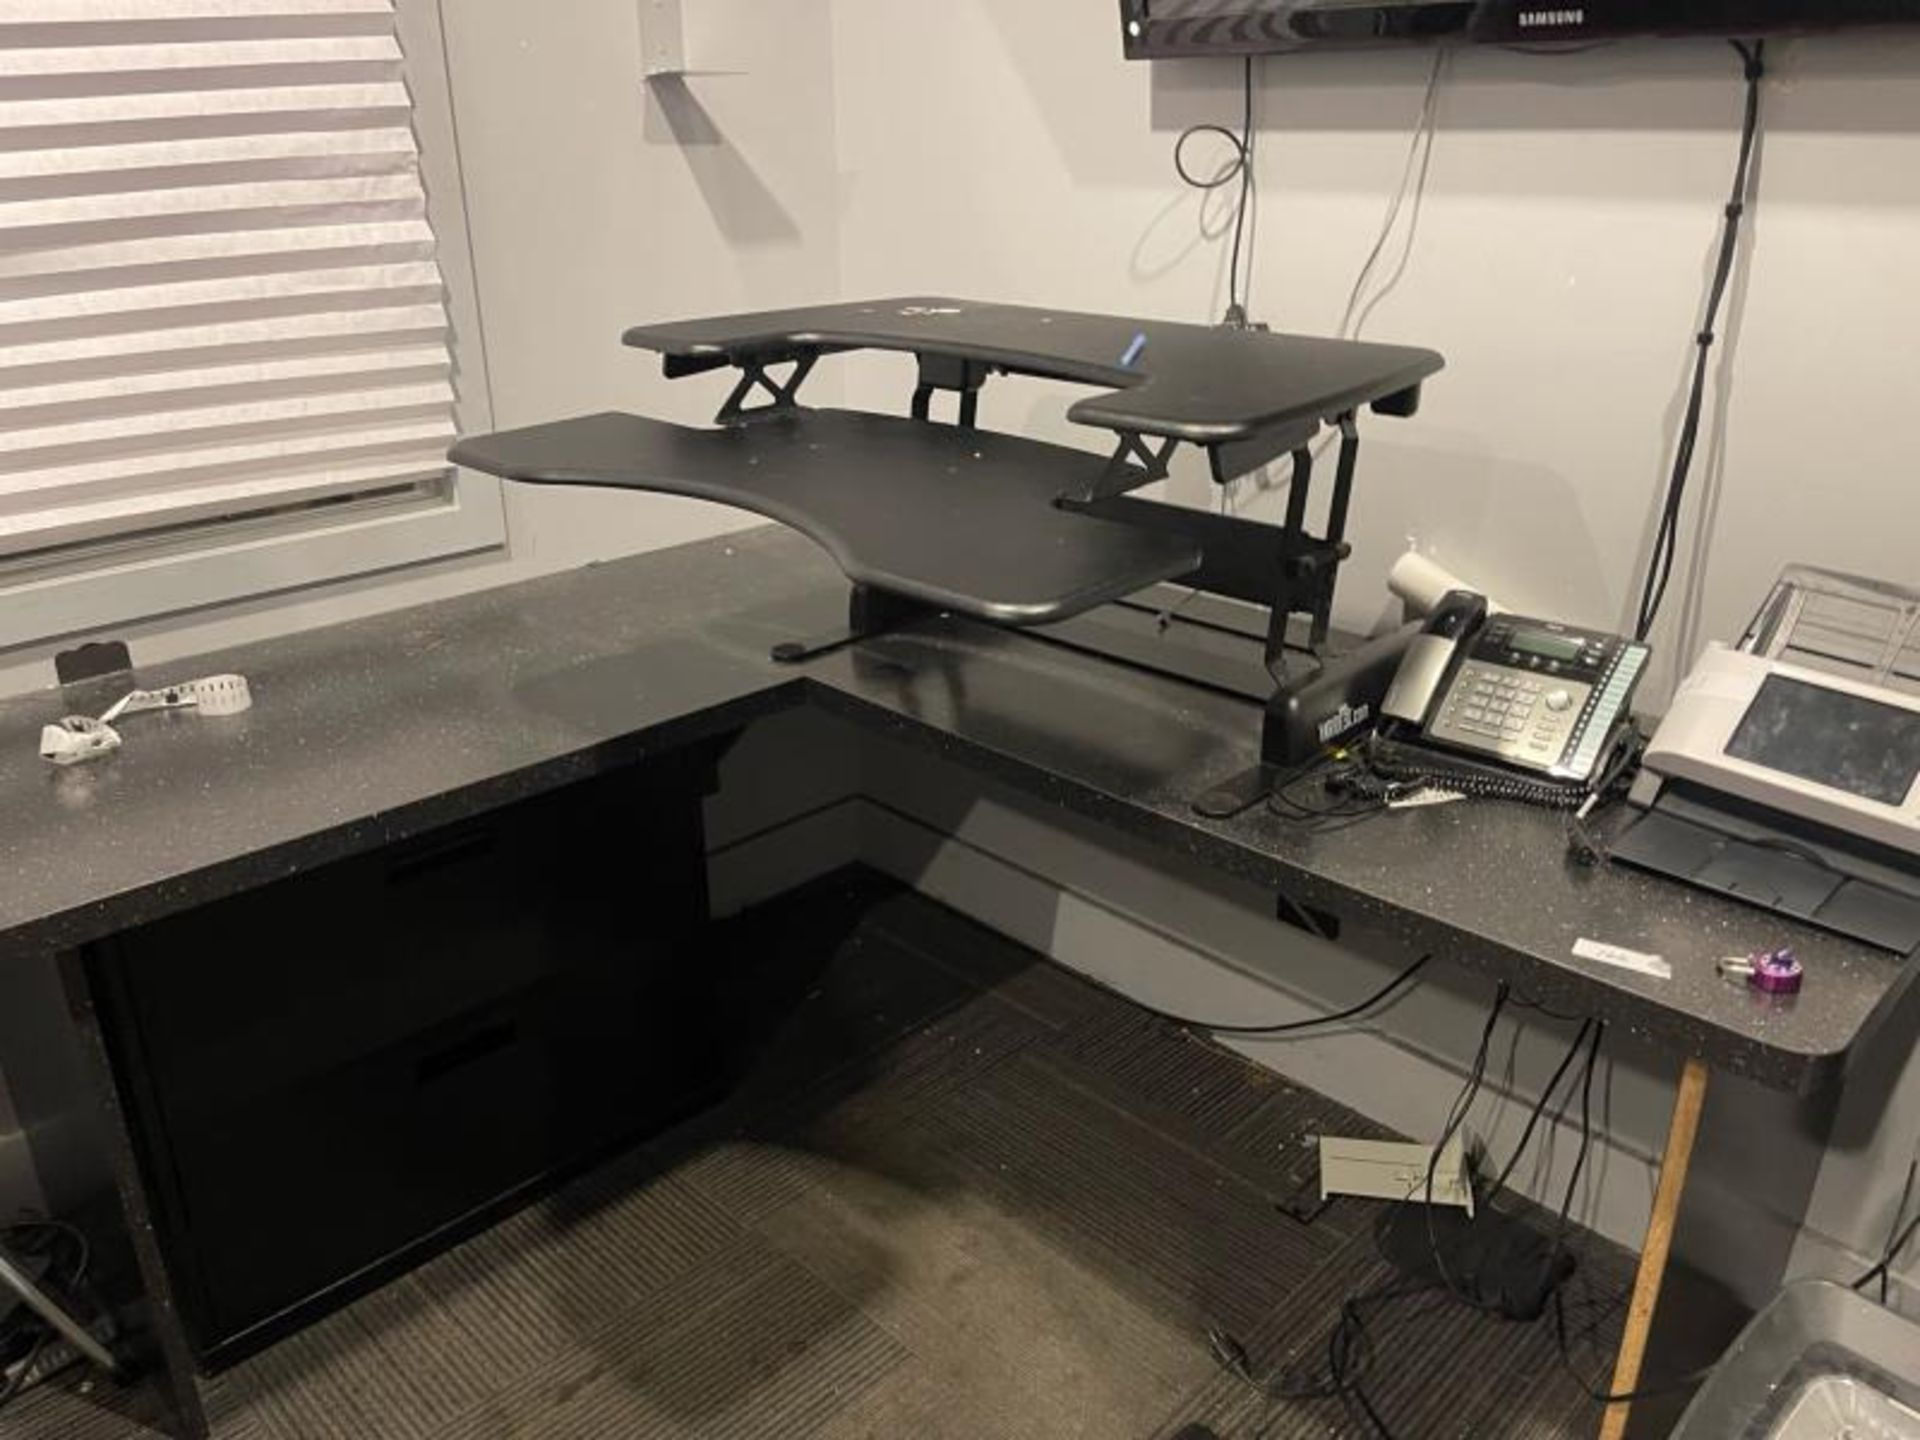 L-Shaped Laminate Desk with Varidesk Attached, 2 Drawer Metal Lateral File